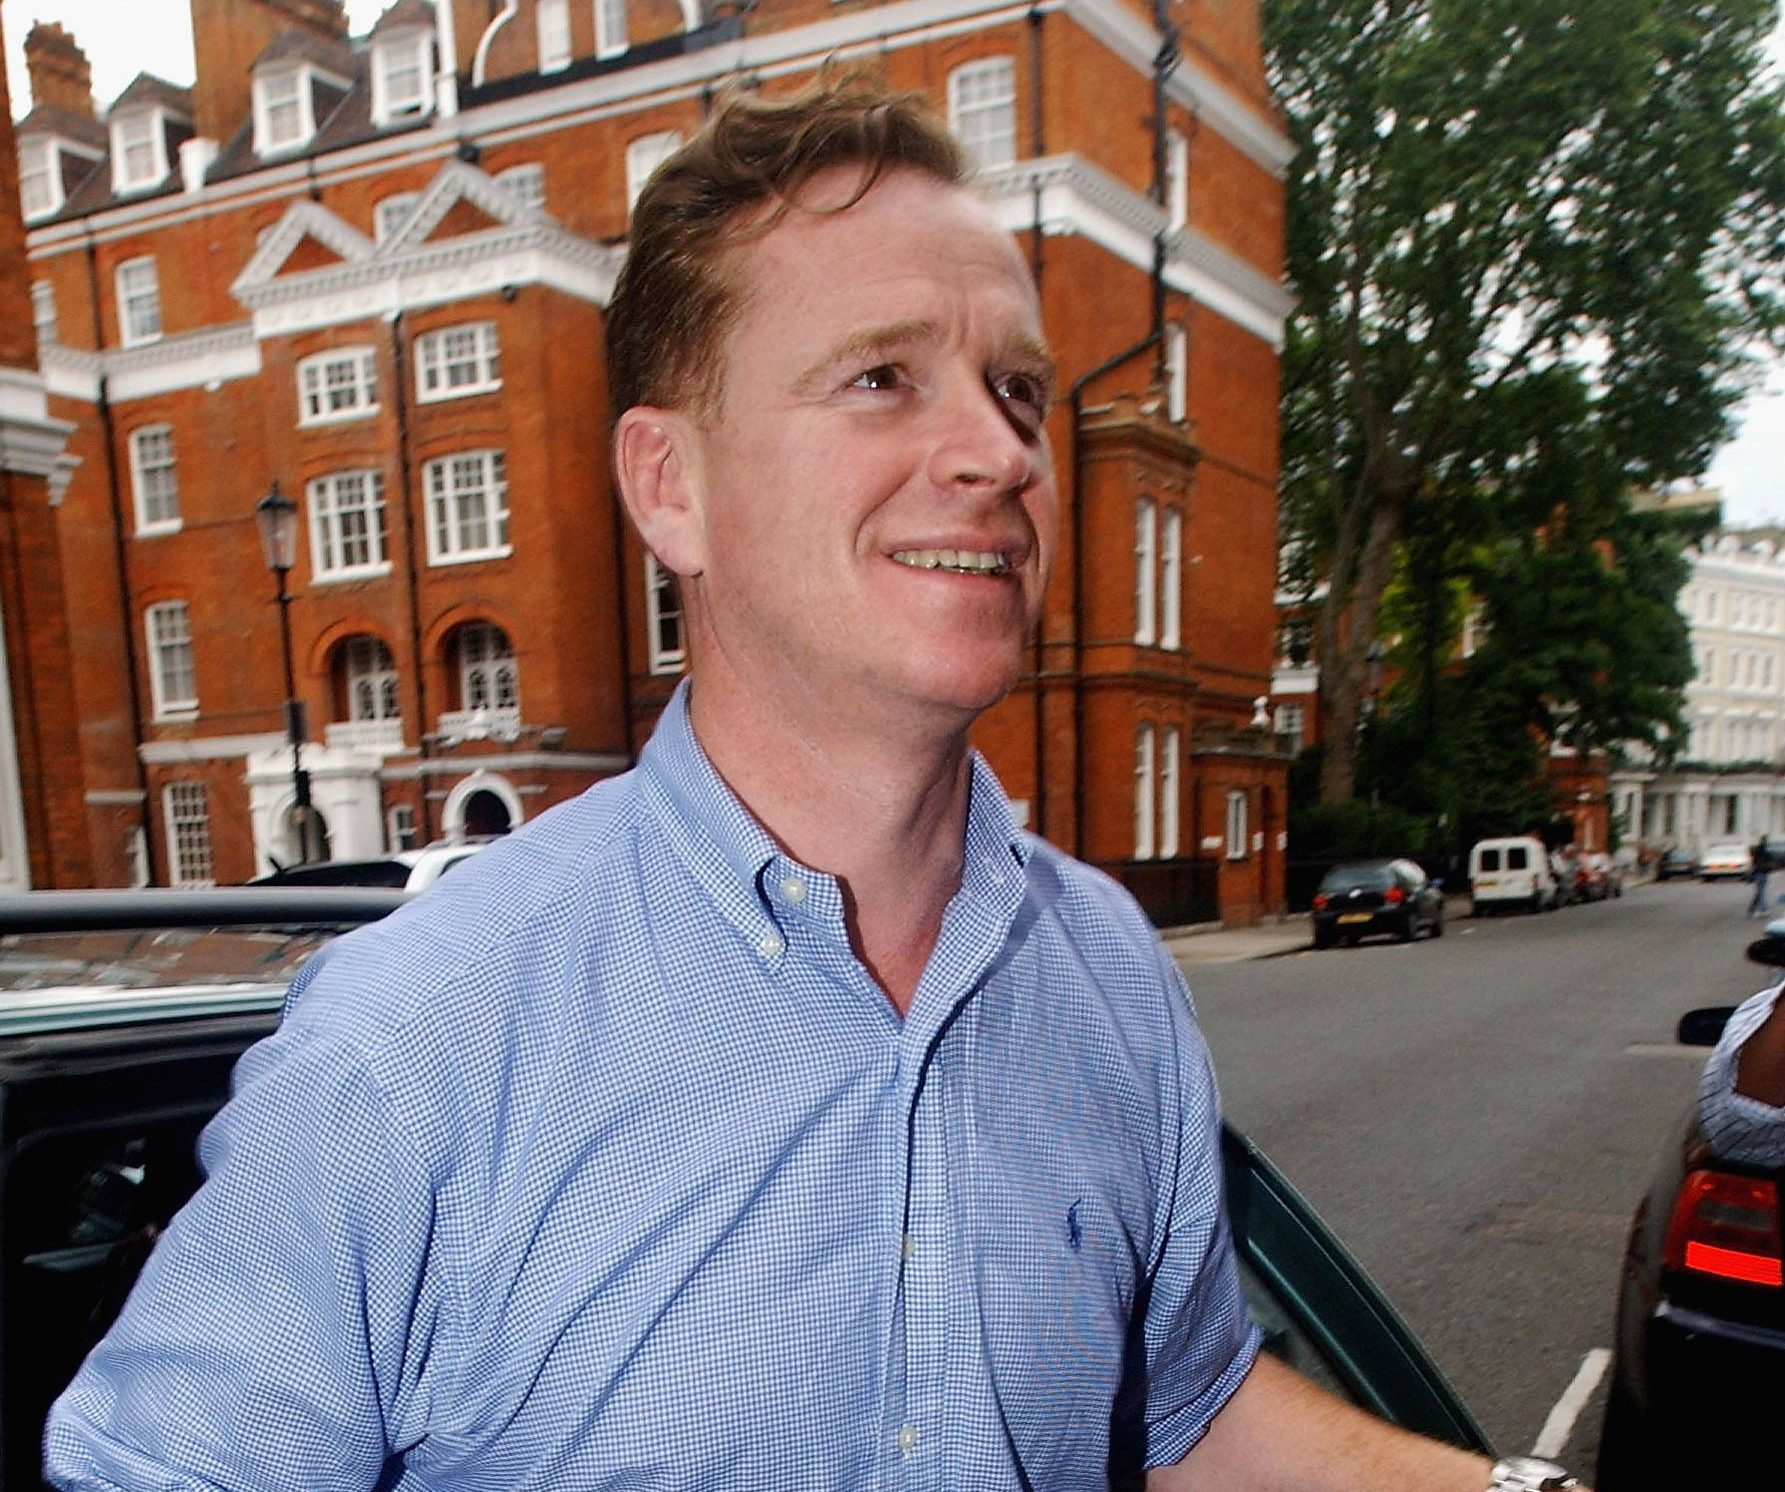 LONDON - JULY 22: Major James Hewitt returns home, following his arrest on drugs charges last night, to his South Kensington residence on July 22, 2004 in London. The Major was detained at the Cactus Bar in Fulham Road along with former Sky News freelance presenter Alison Bell on suspicion of supplying class A drugs. Both were questioned at Notting Hill police station before being bailed until September. (Photo by Steve Finn/Getty Images)